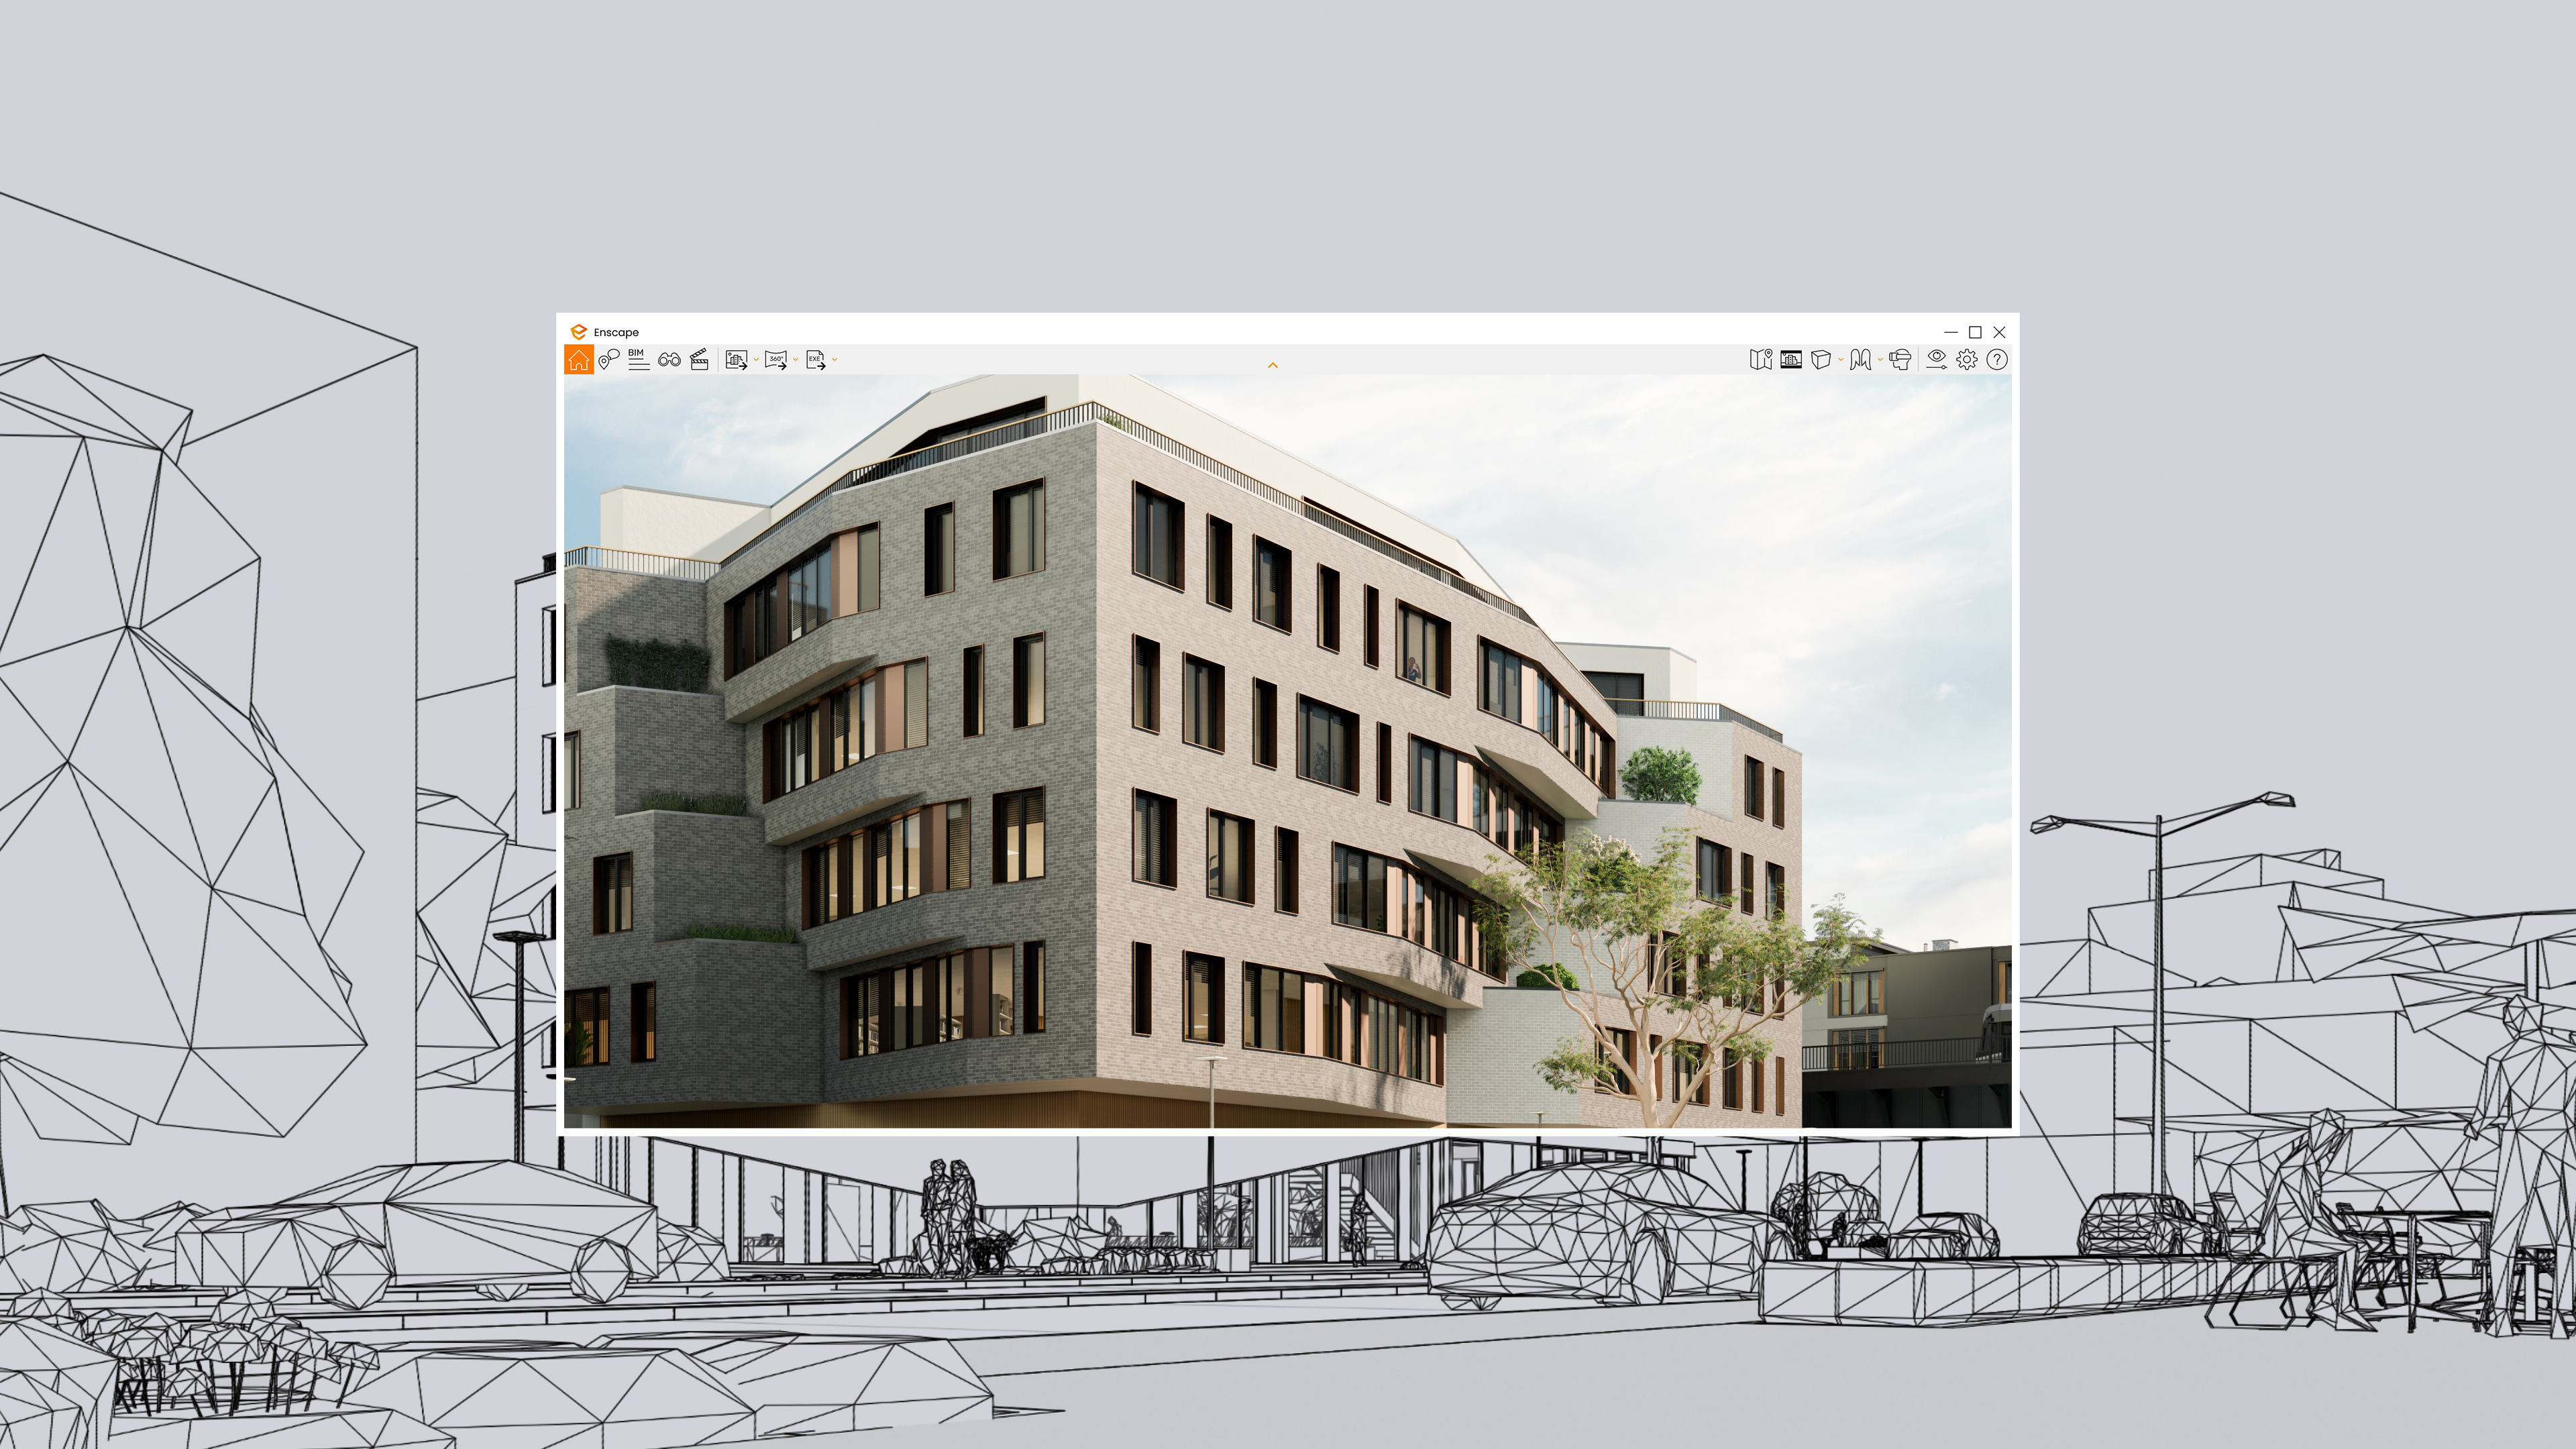 With Enscape, BIM modeling and visualization are finally united. Unlike other renderers, you don't have to stop design to create high-quality visuals.